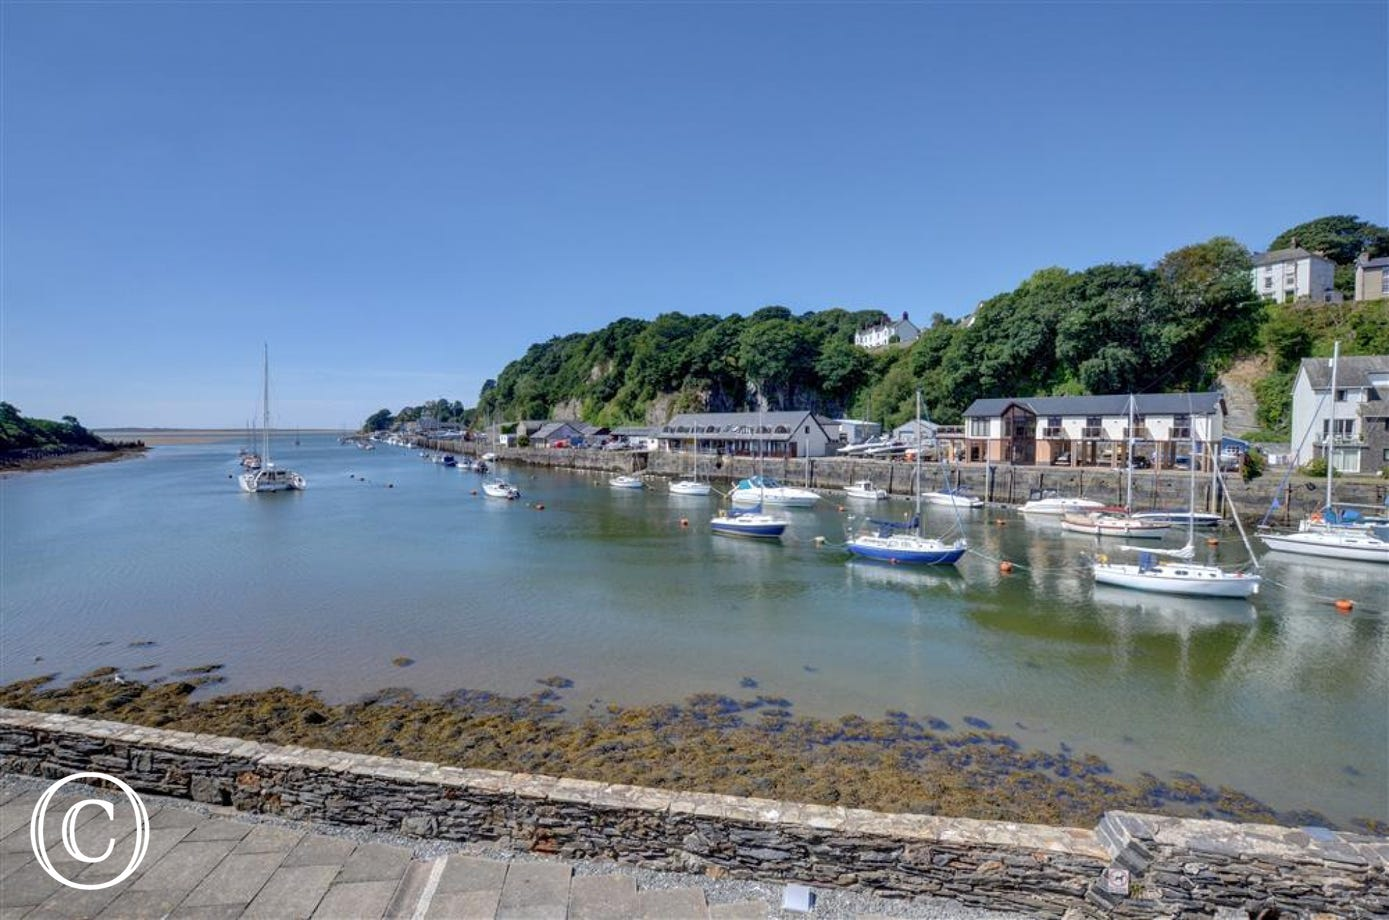 50 south Snowdon Wharf looks out over the marina at Porthmadog and is within easy reach of all the town's facilities